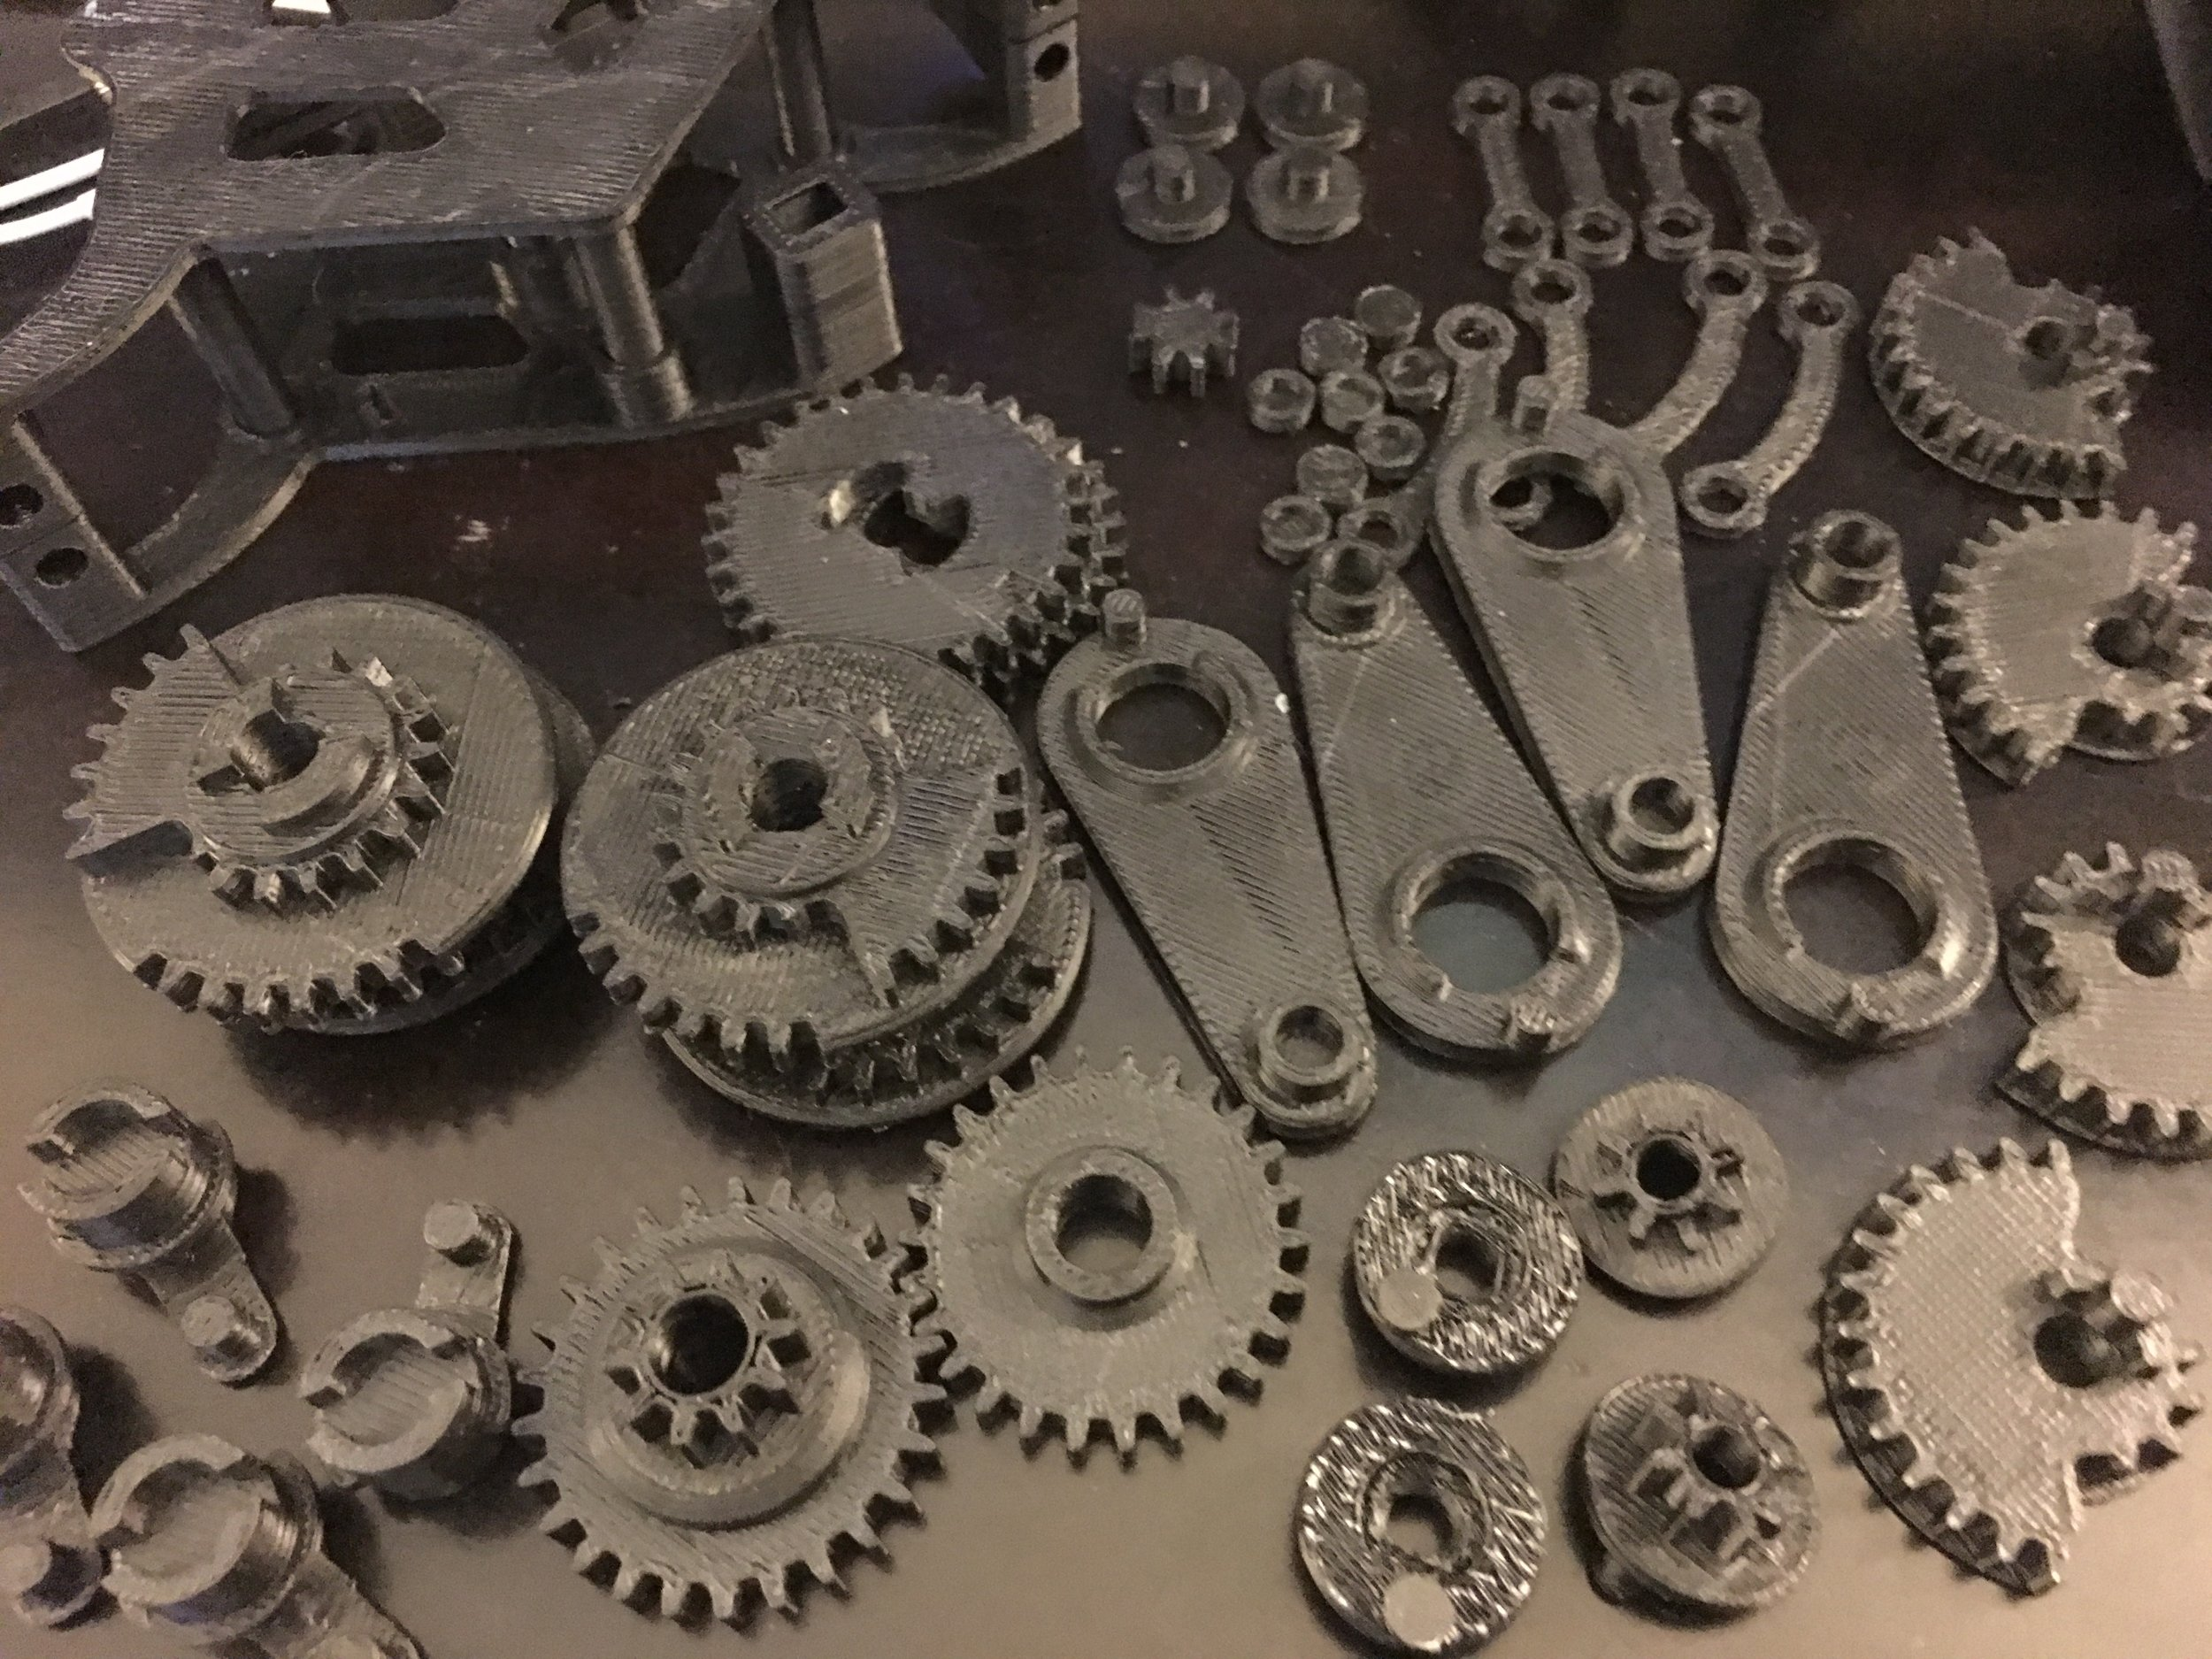 3D Printed Clockwork Mechanism